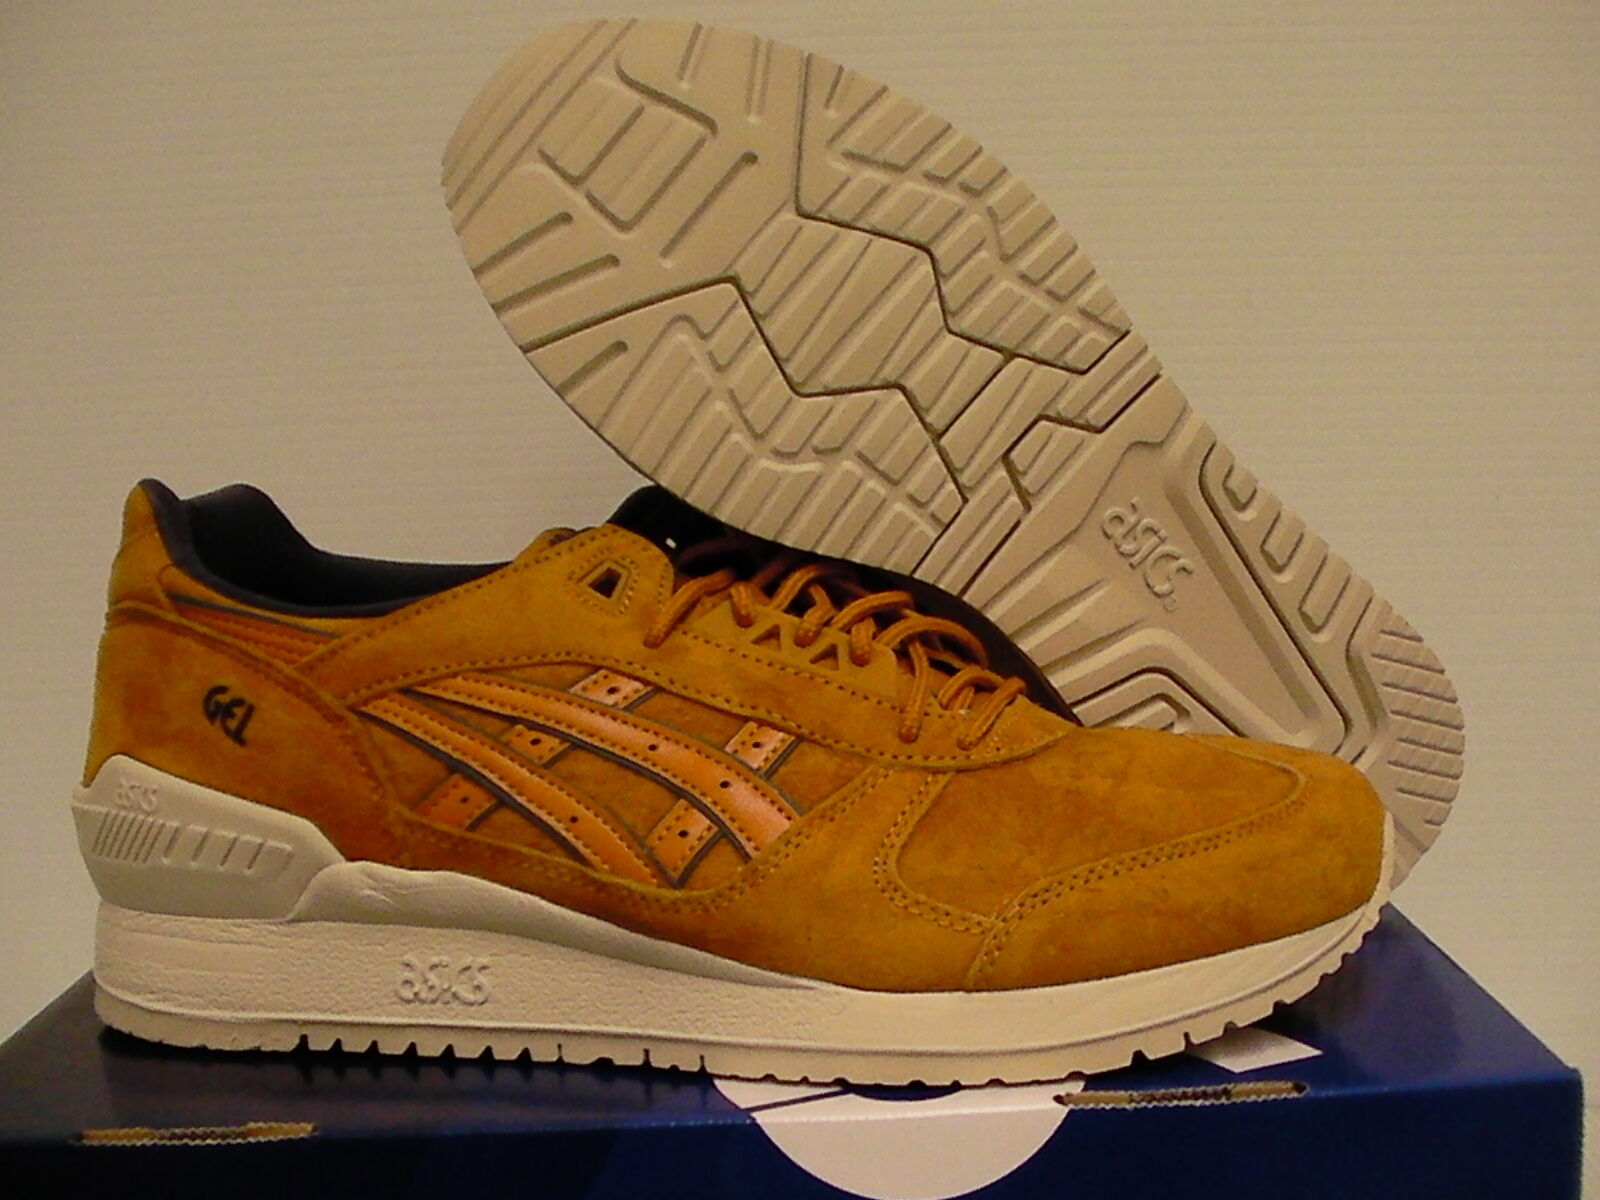 Mens Asics running scarpe gel respector tan Dimensione Dimensione Dimensione 9.5 us men new with box 05fe9b